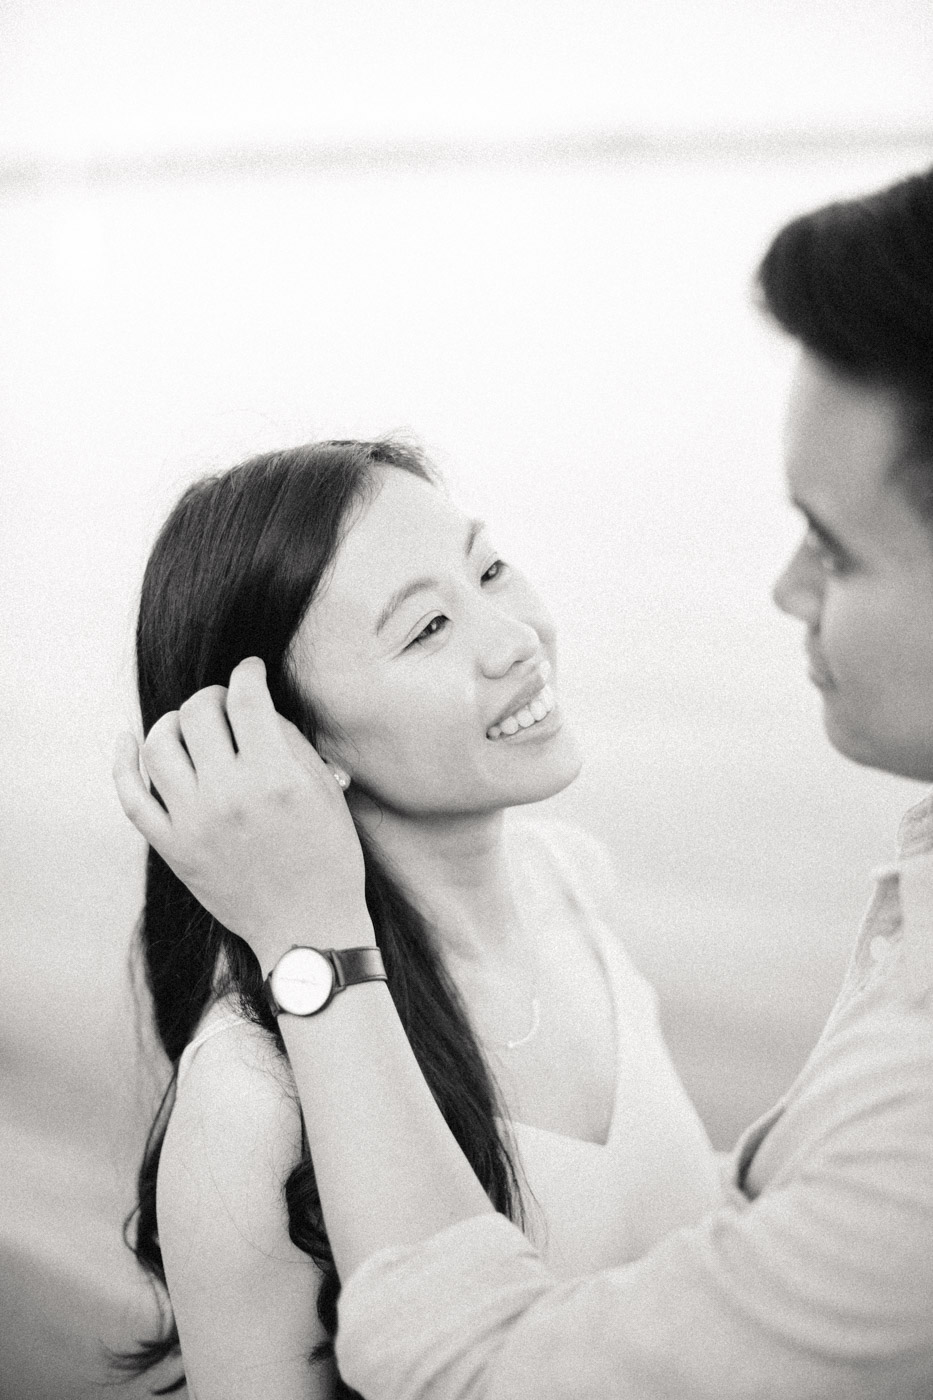 toronto_wedding_photographer_engagement_beach-114.jpg